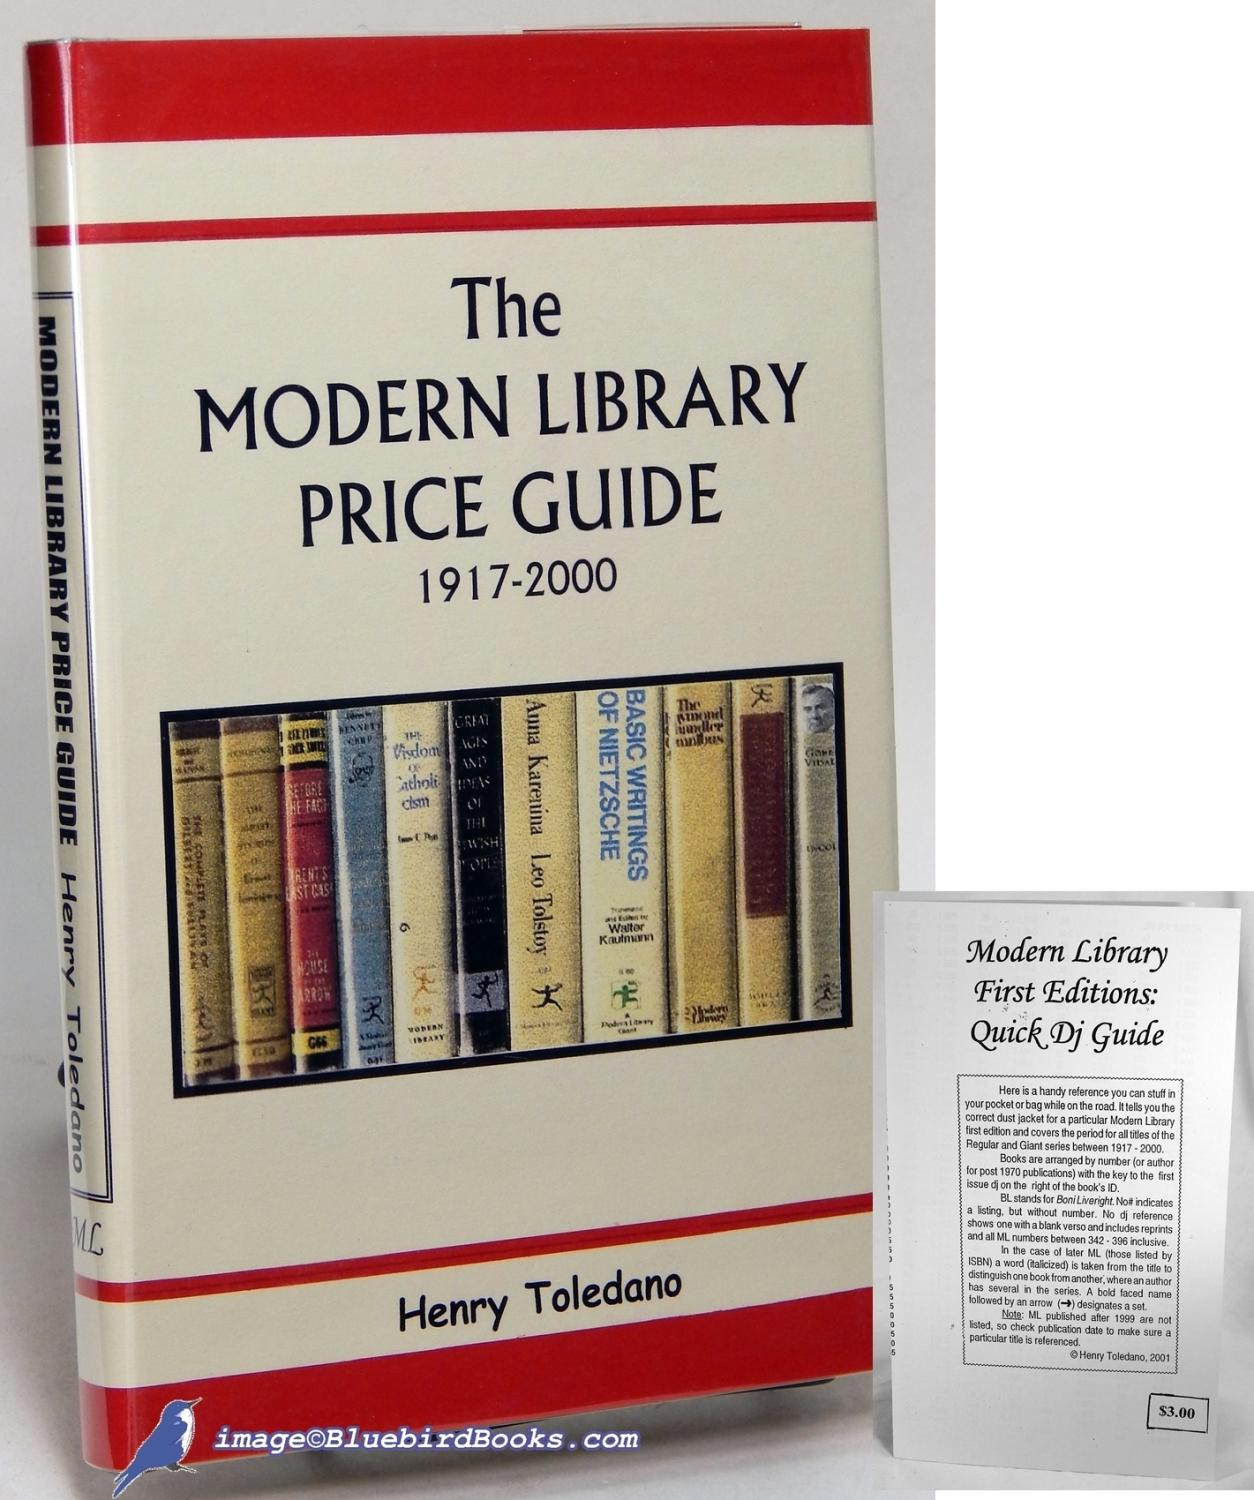 The modern library price guide 1917-2000 + modern library first.